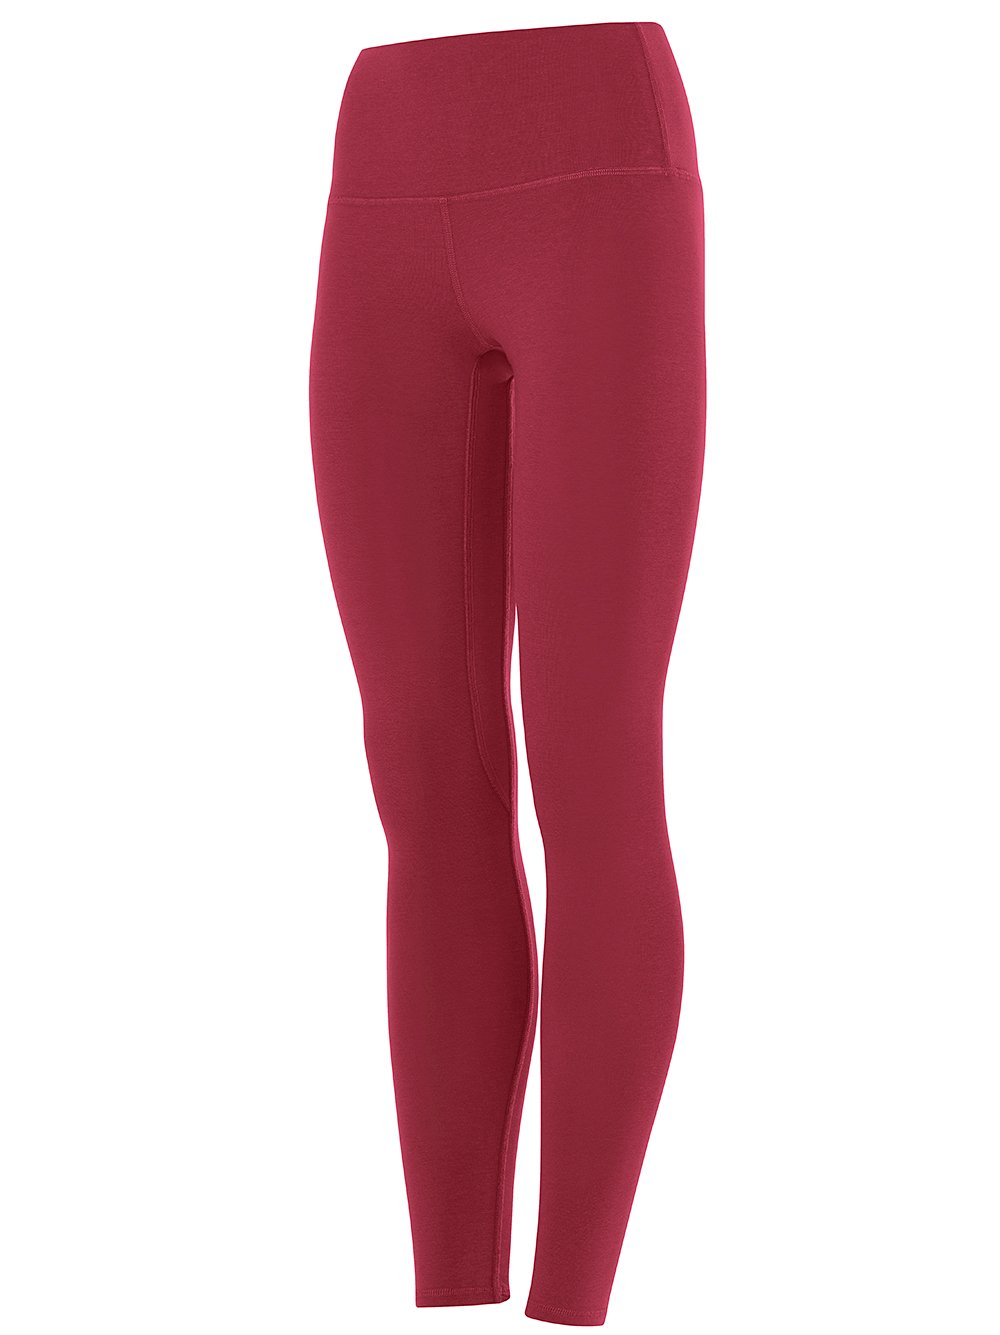 Yoga Legging in rot